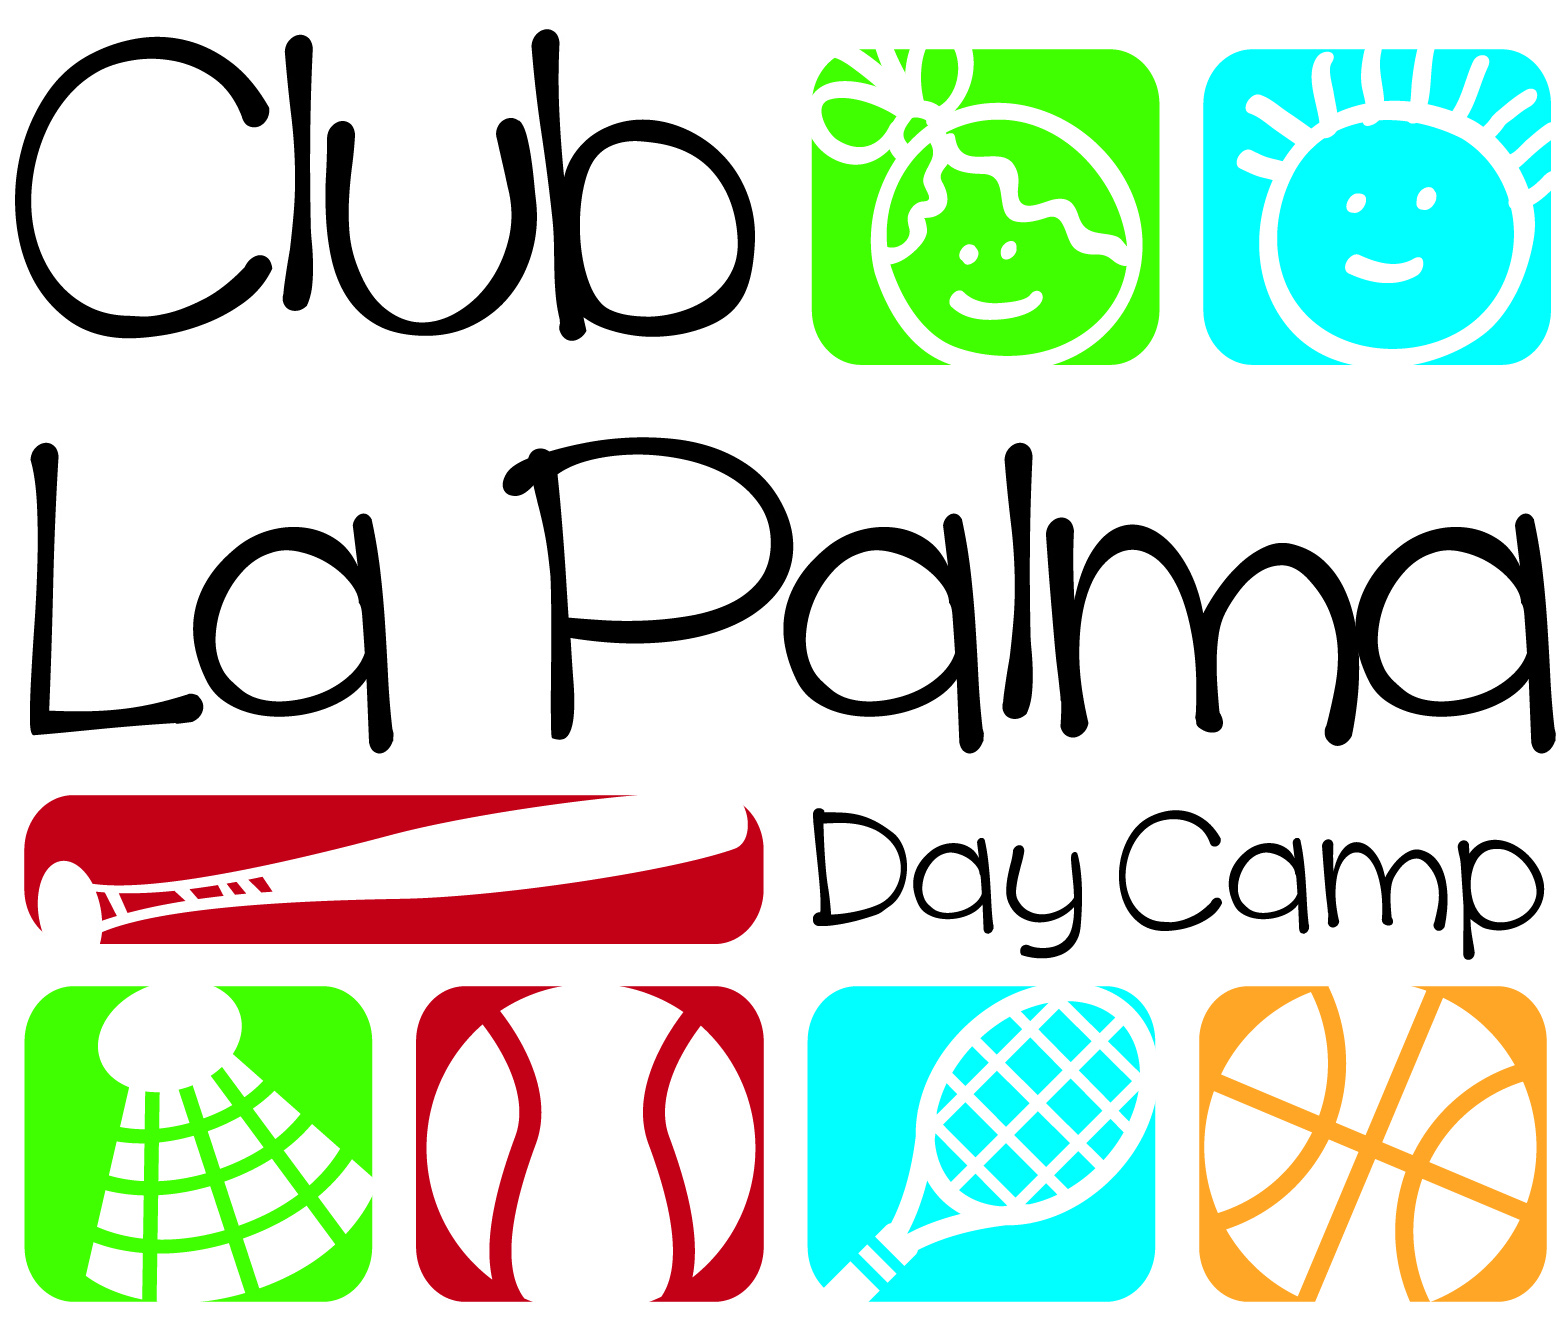 Club La Palma logo spot color v2.jpg